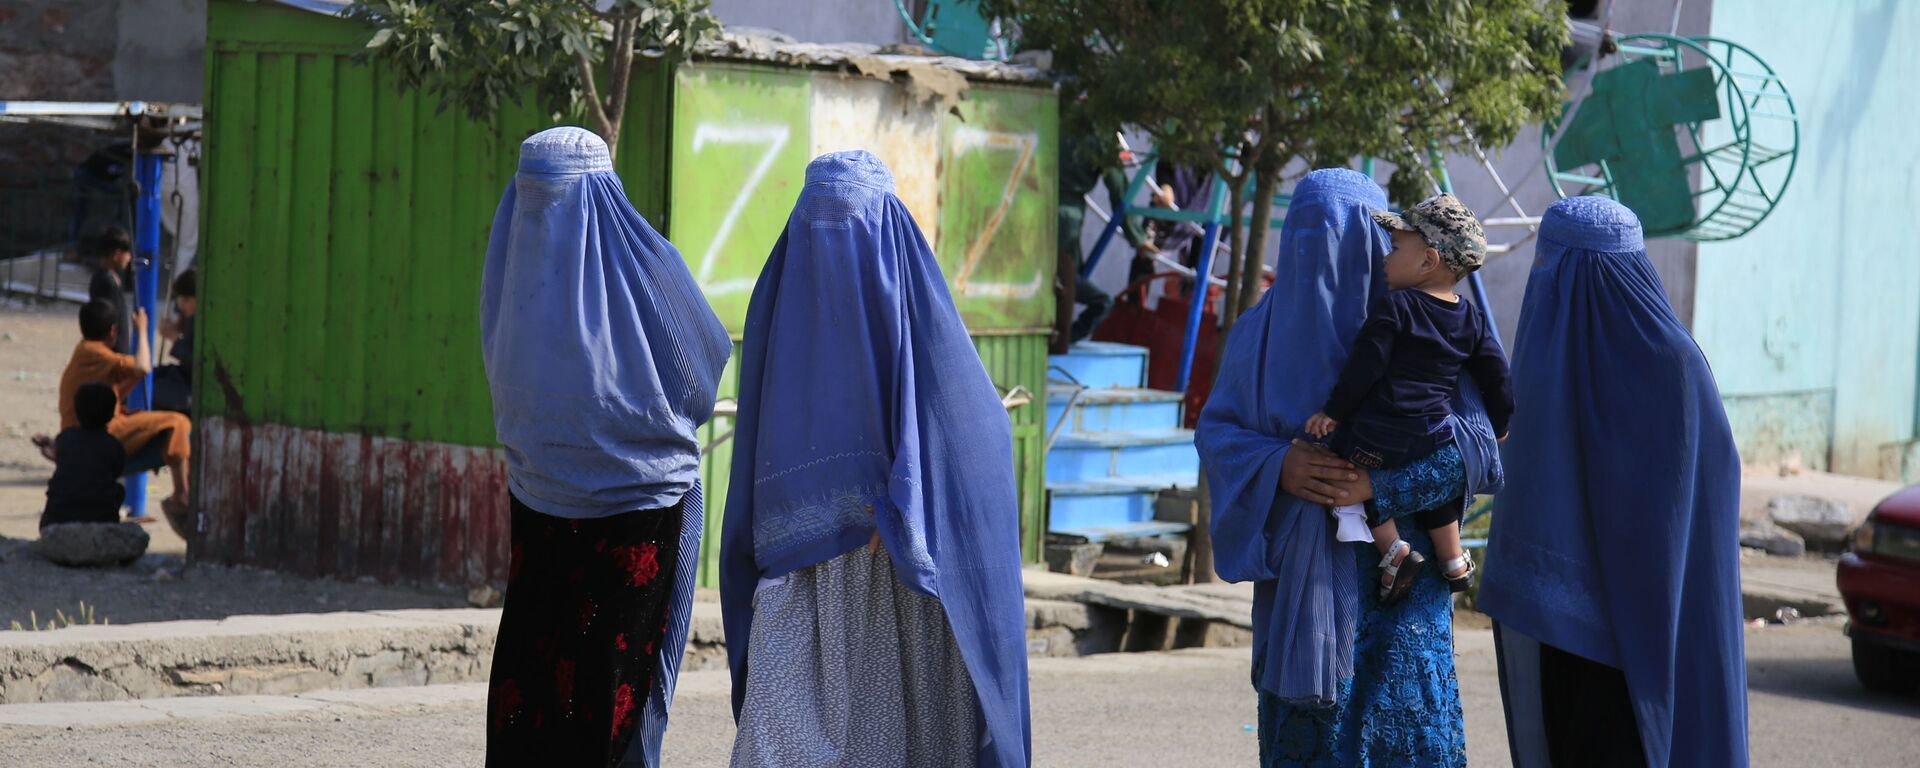 Afghan women walk on the road during the first day of Eid al-Fitr in Kabul, Afghanistan, Thursday, May 13, 2021 - Sputnik International, 1920, 17.08.2021